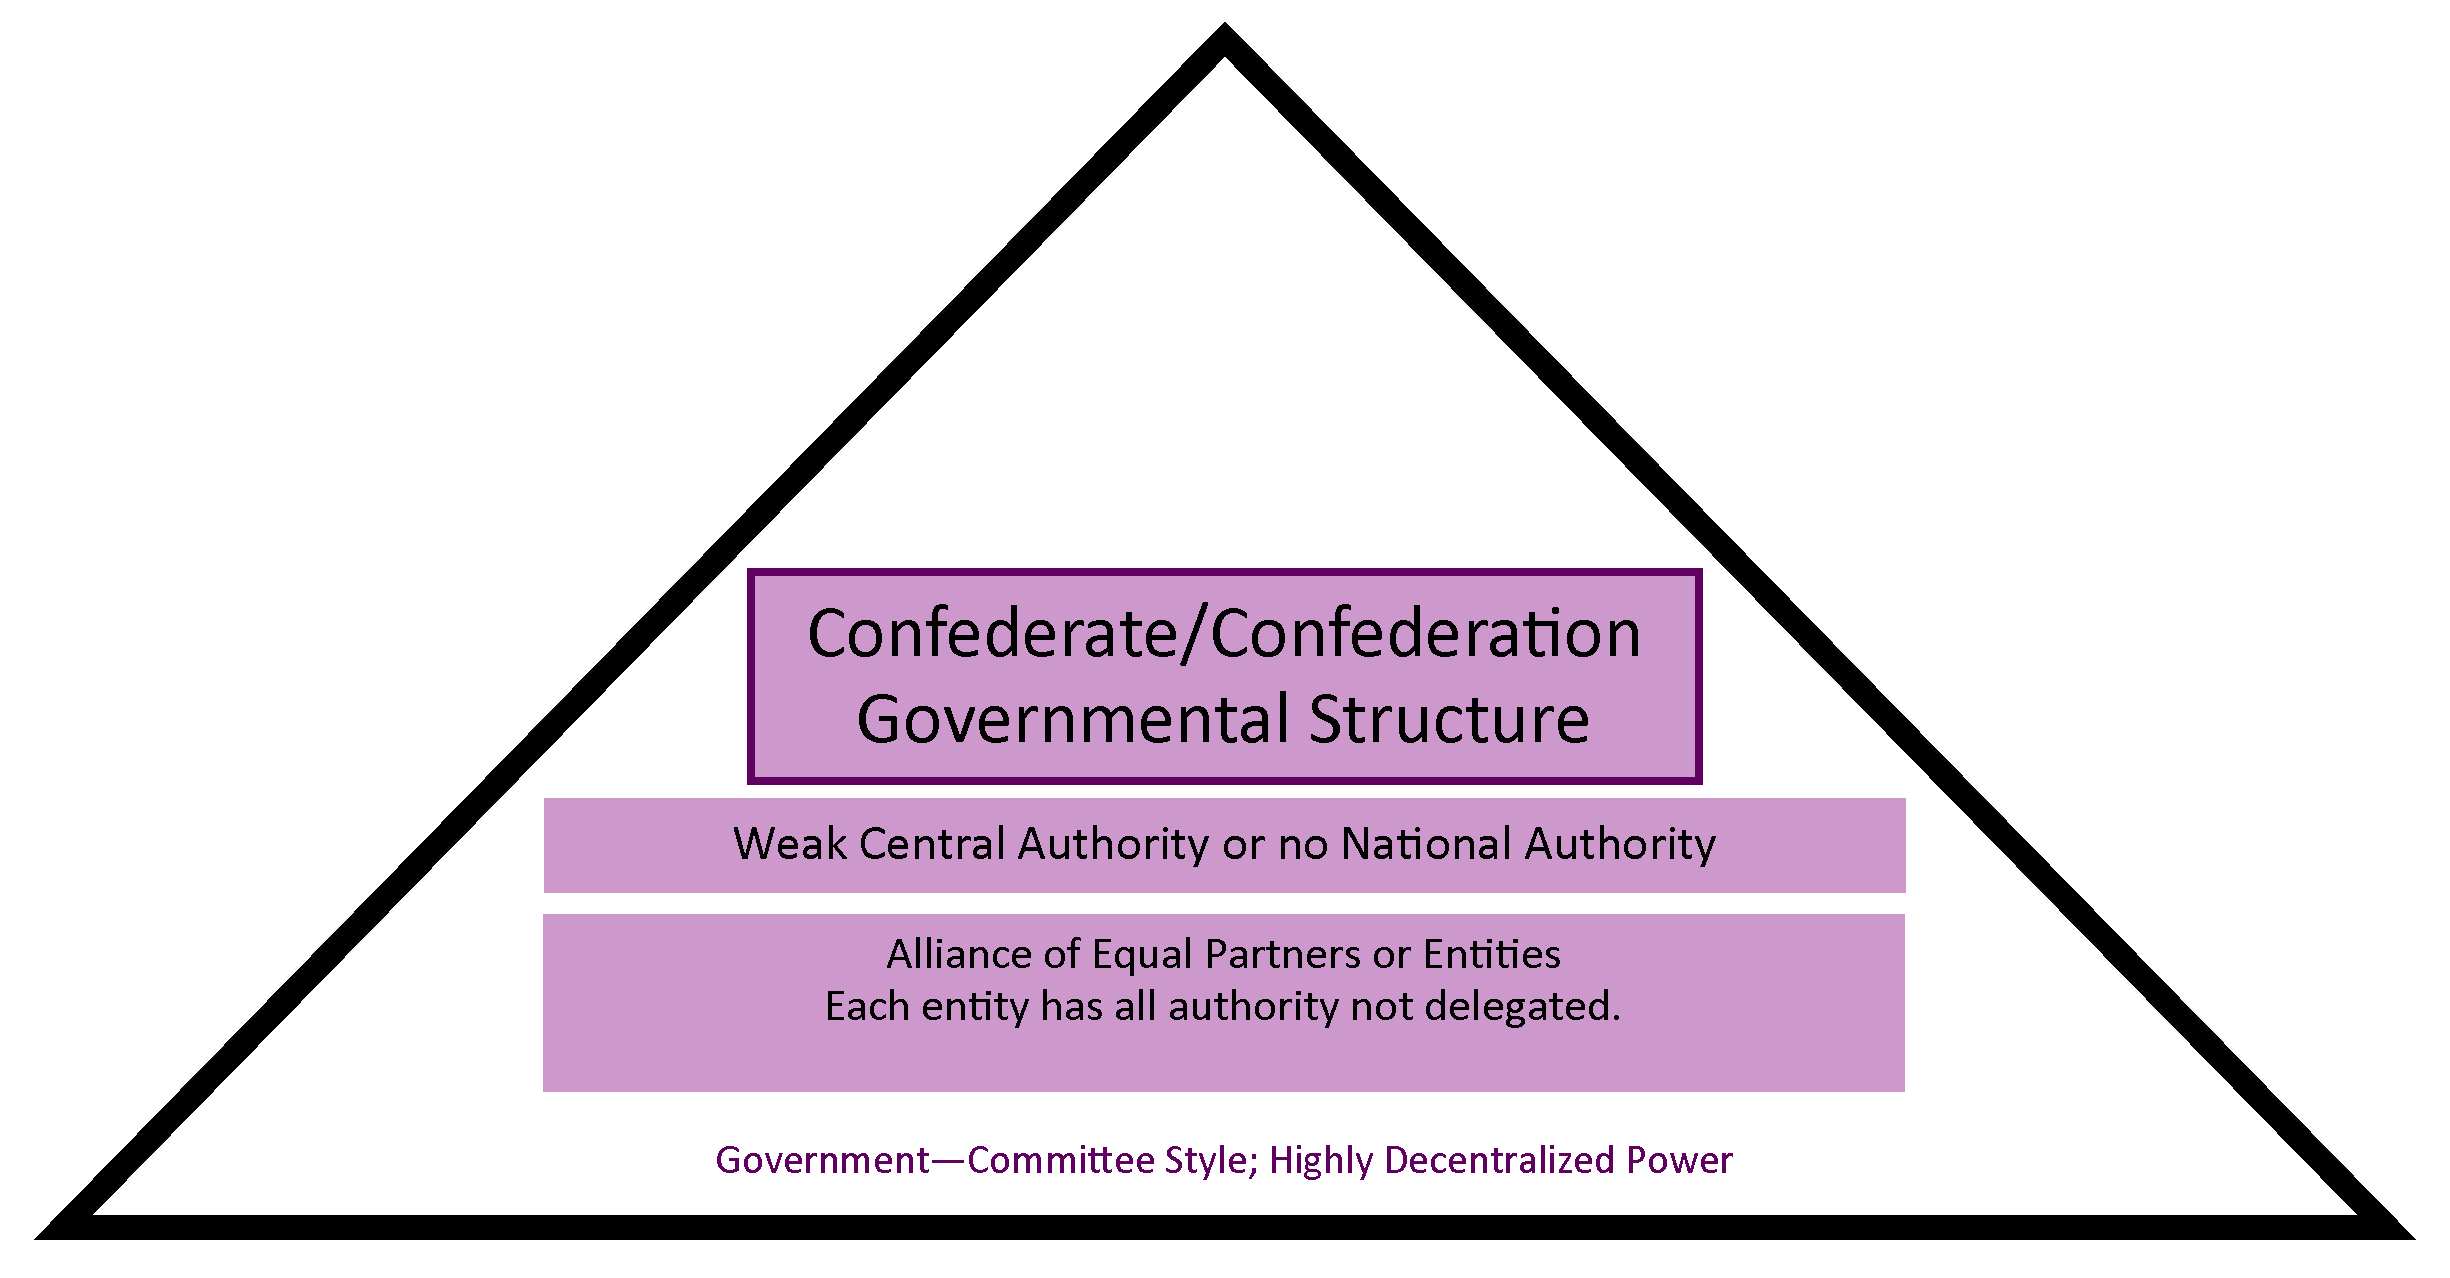 Chart showing how a confederate structure has a weak central authority and is more government by committee.